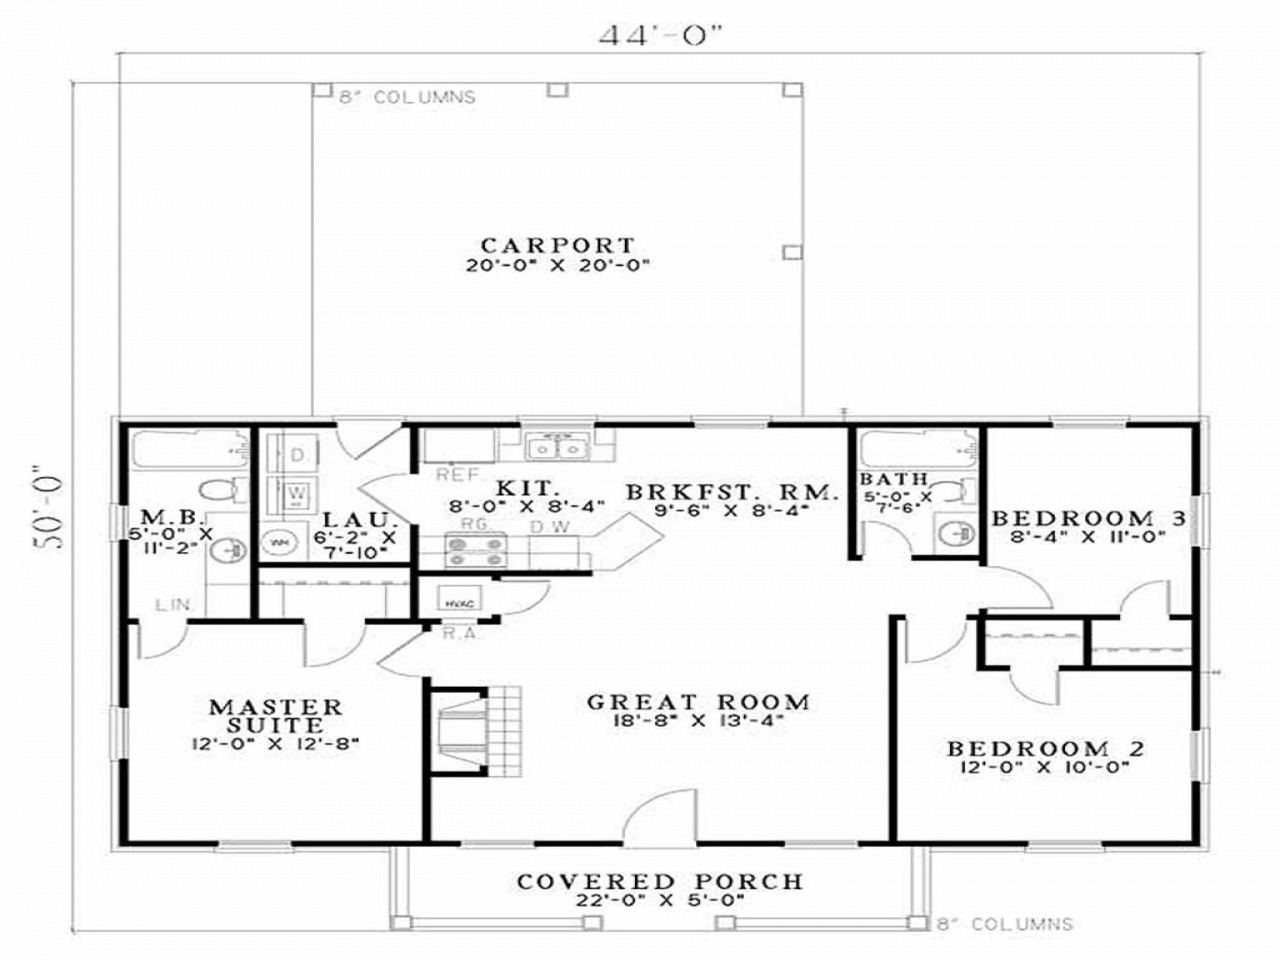 Ranch House Plans Sq Feet on la house plans, zip house plans, sl house plans, sa house plans, tk house plans, square foot house plans, uk house plans, mr house plans, arc house plans, sm house plans,